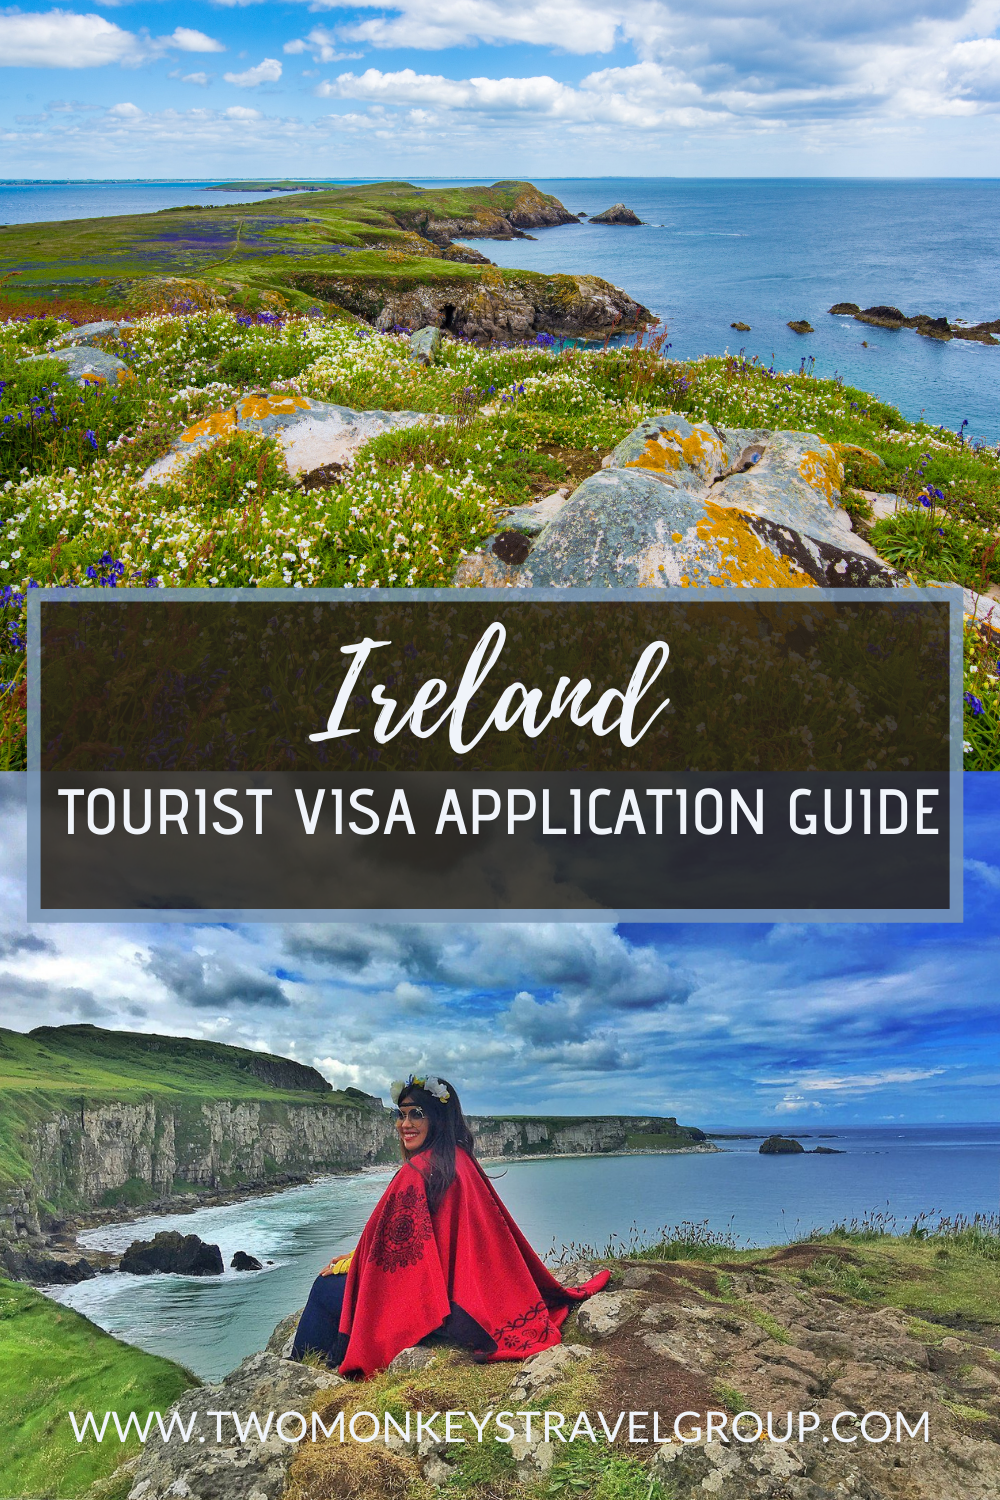 How To Get An Ireland Tourist Visa With Your Philippine Passport